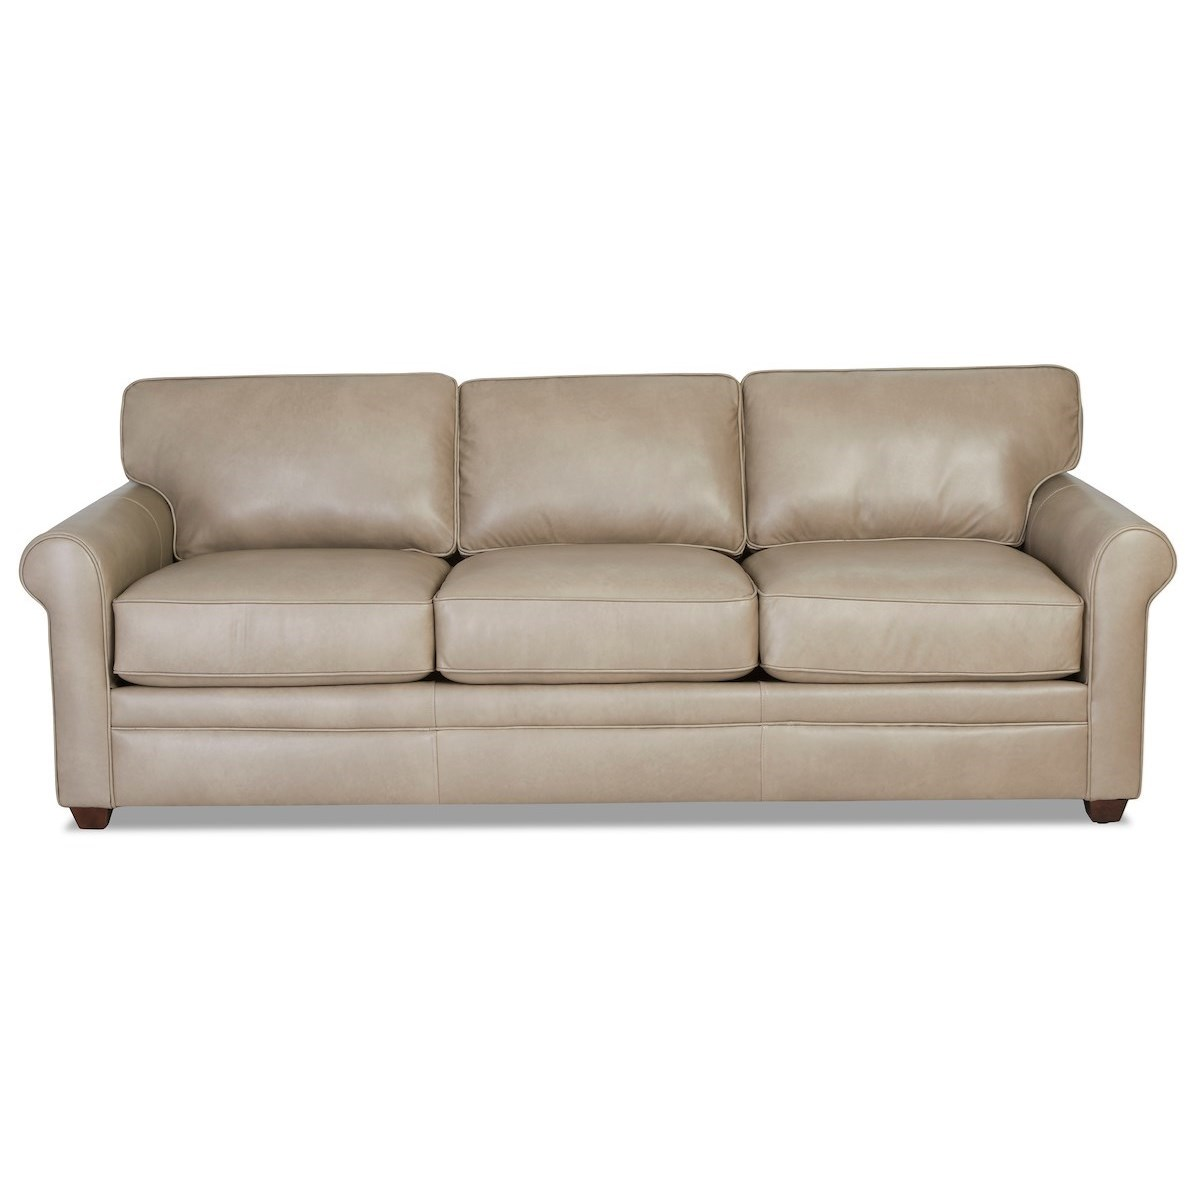 Living Your Way Leather Sofa by Klaussner at Northeast Factory Direct